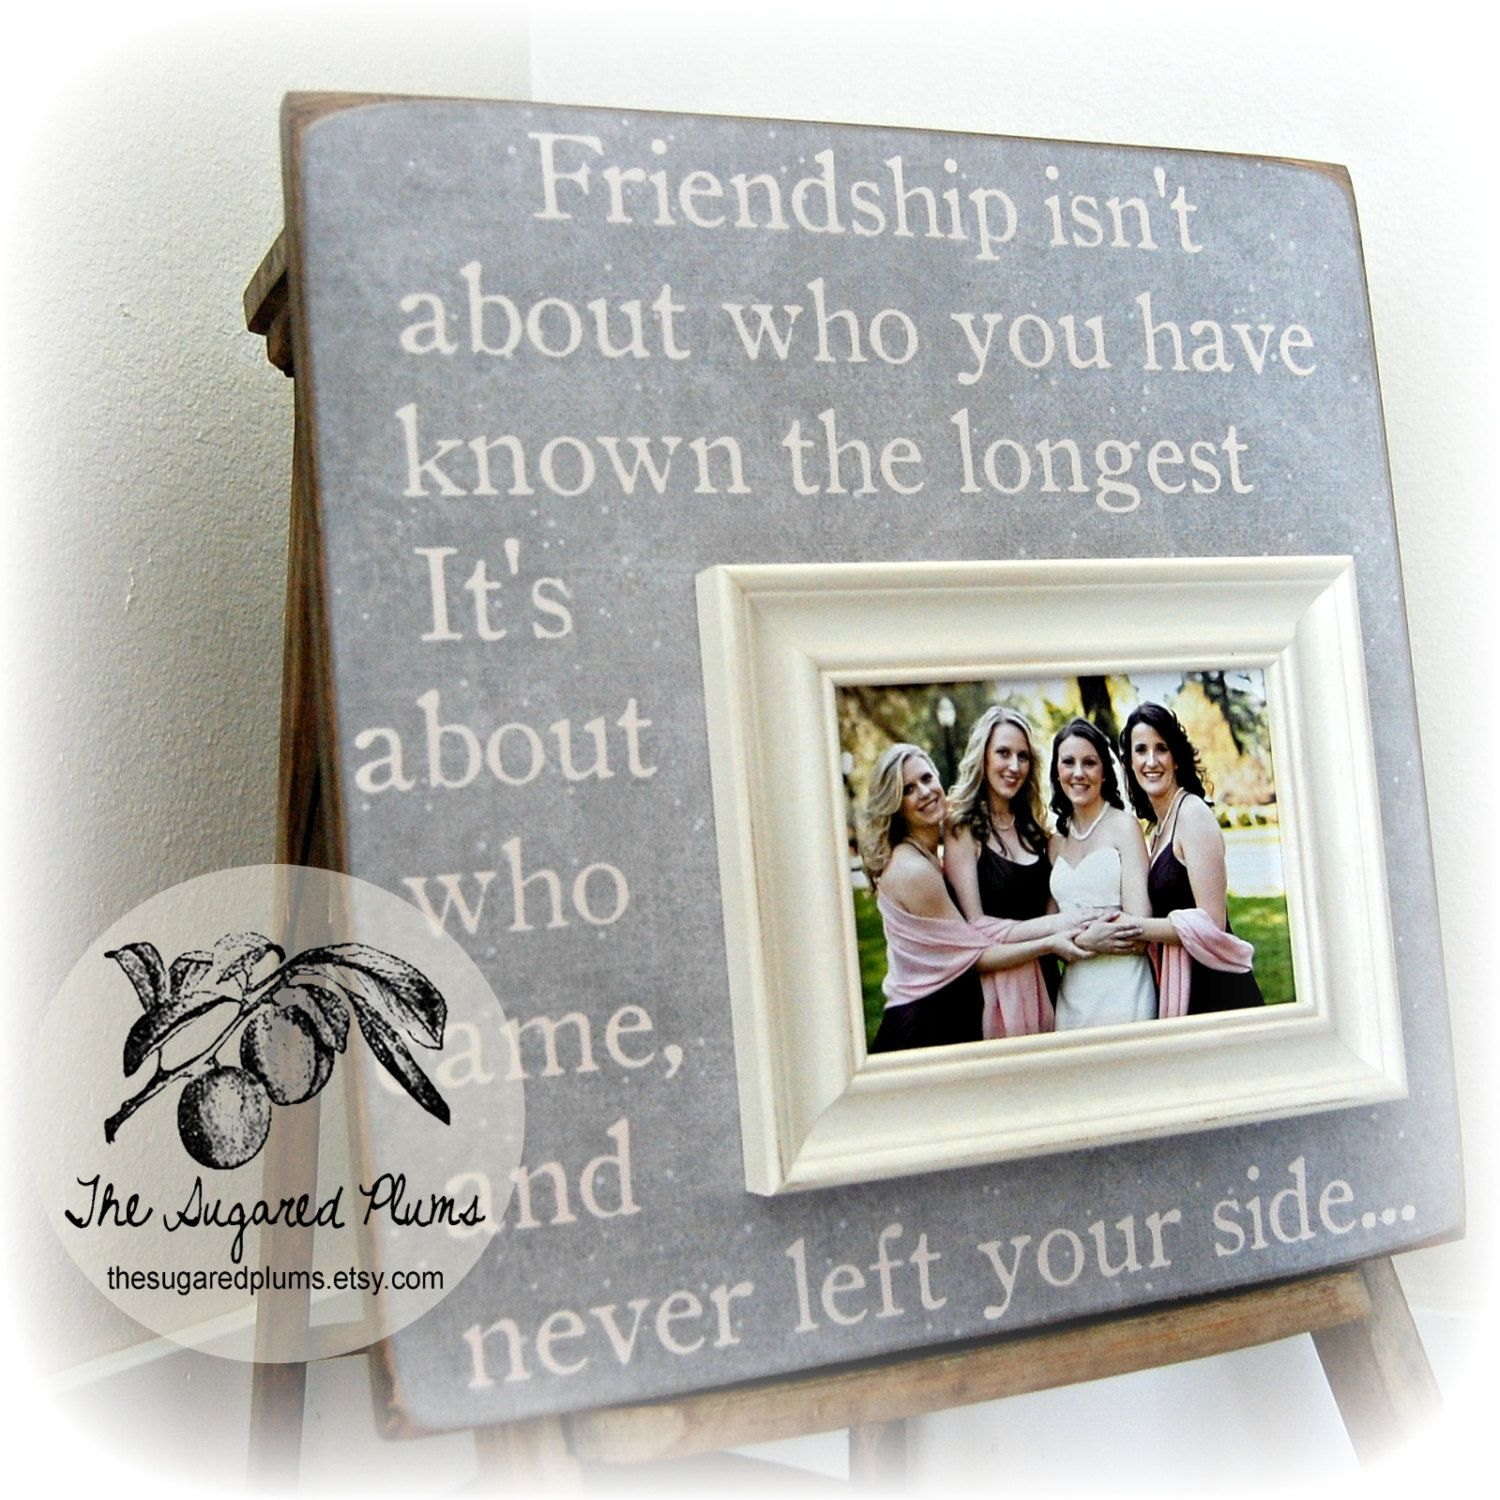 Sister Gift, Bridesmaid Gift, Best Friend Gift, Maid Of. Humor Quotes Twitter. Motivational Quotes About Hard Work. Sad Quotes Videos. Confidence Quotes To Share On Facebook. Love Quotes In Songs. Heartbreak Ridge Quotes Adapt Improvise Overcome. Friendship Quotes Time. Encouragement Quotes And Sayings